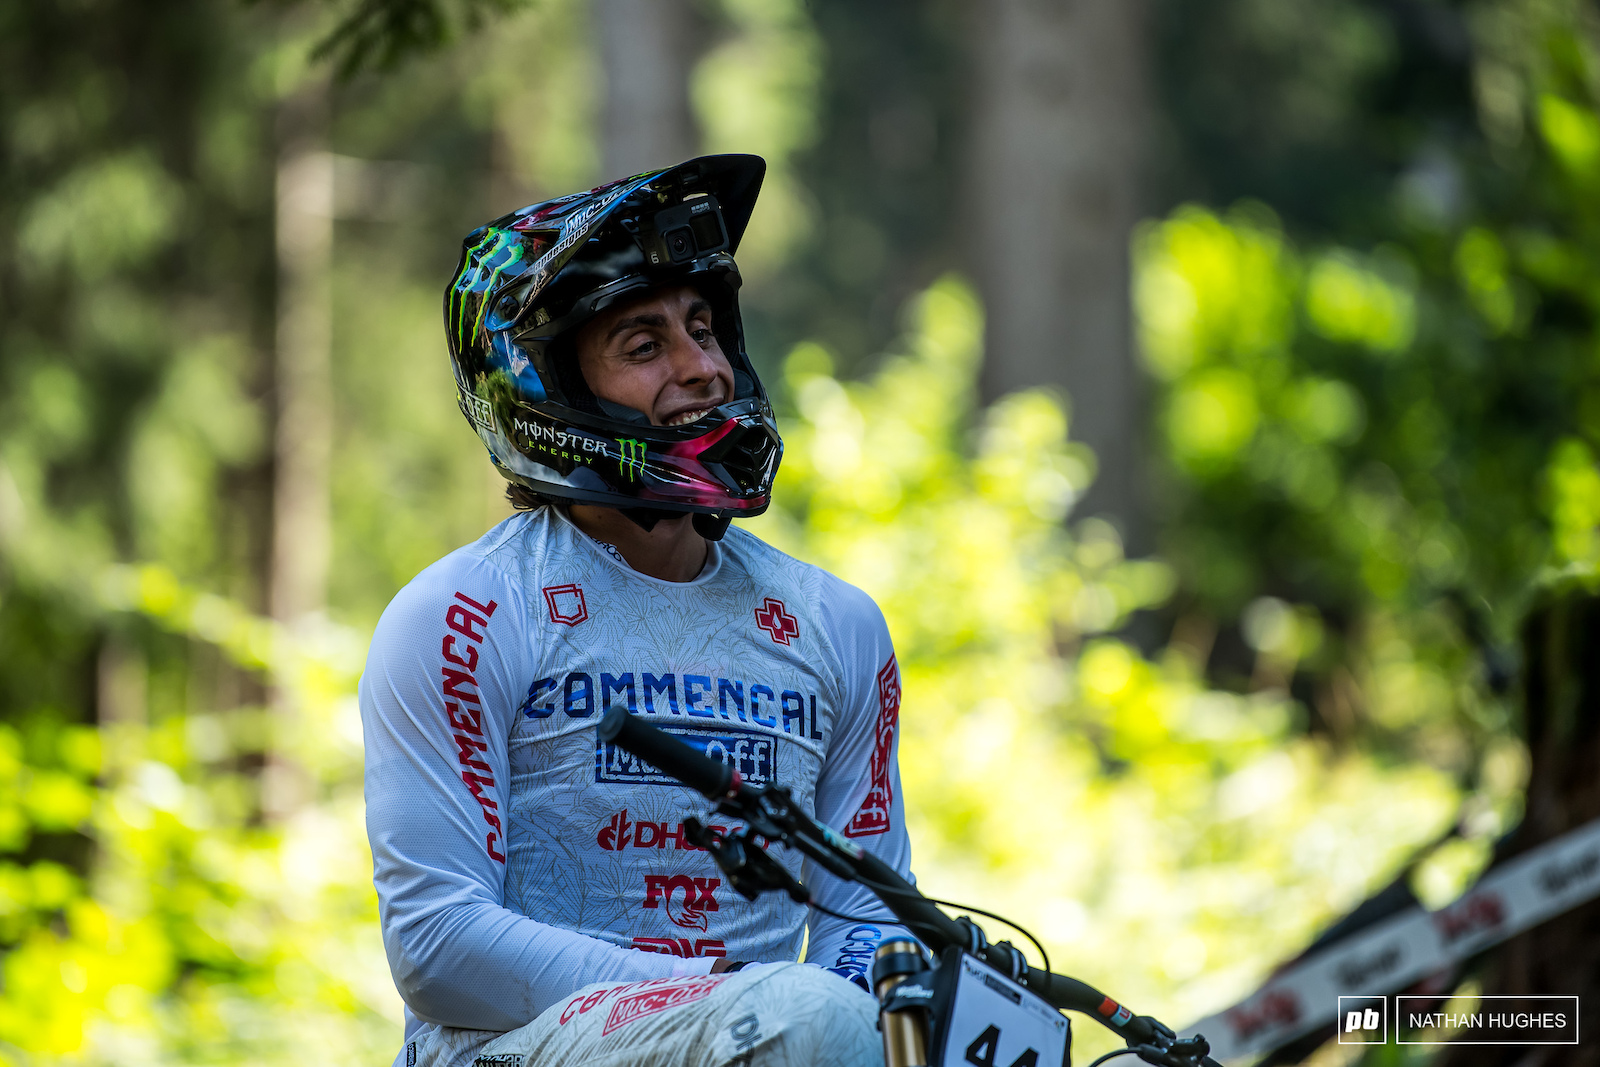 Great to see the man and myth Amaury Pierron back on track and getting up to speed for the remains of the 21 season.